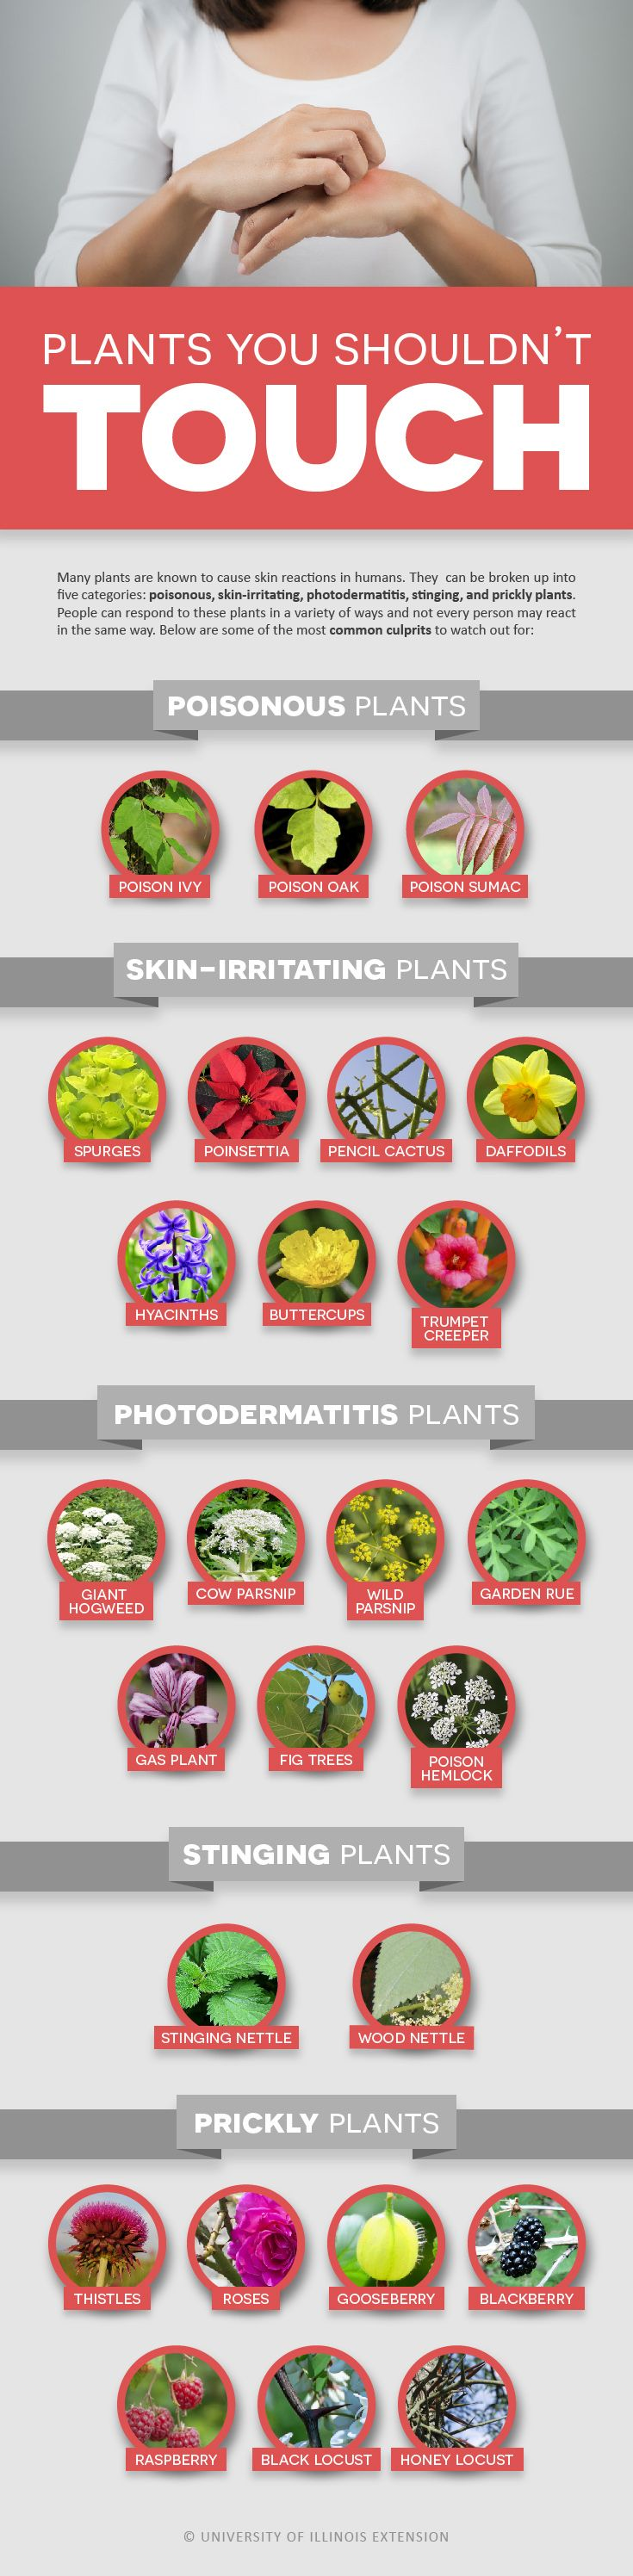 best 25 poisonous plants ideas on pinterest plants toxic to